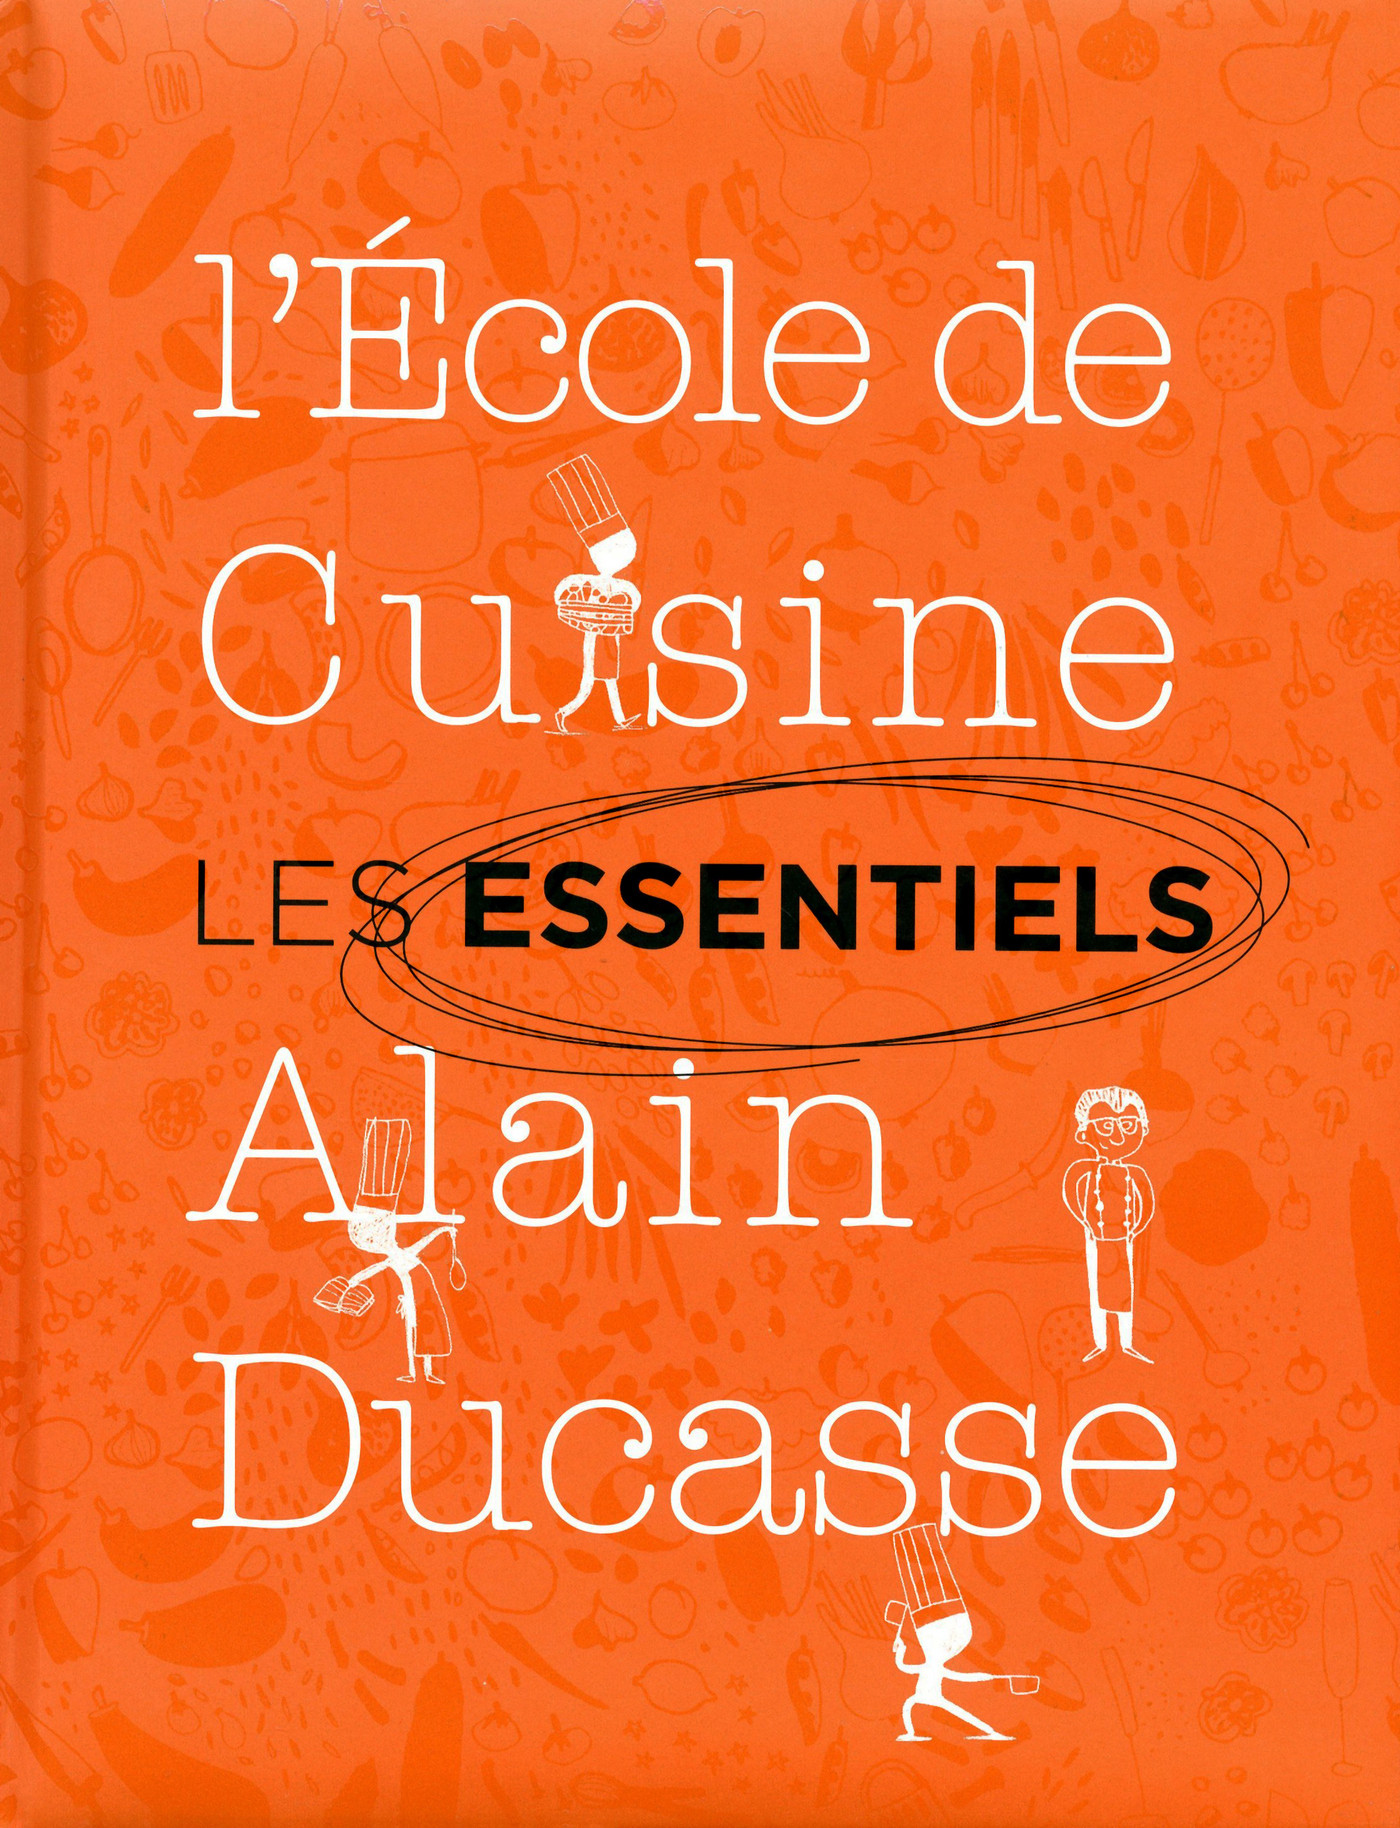 les essentiels de l 39 cole de cuisine alain ducasse alain ducasse. Black Bedroom Furniture Sets. Home Design Ideas